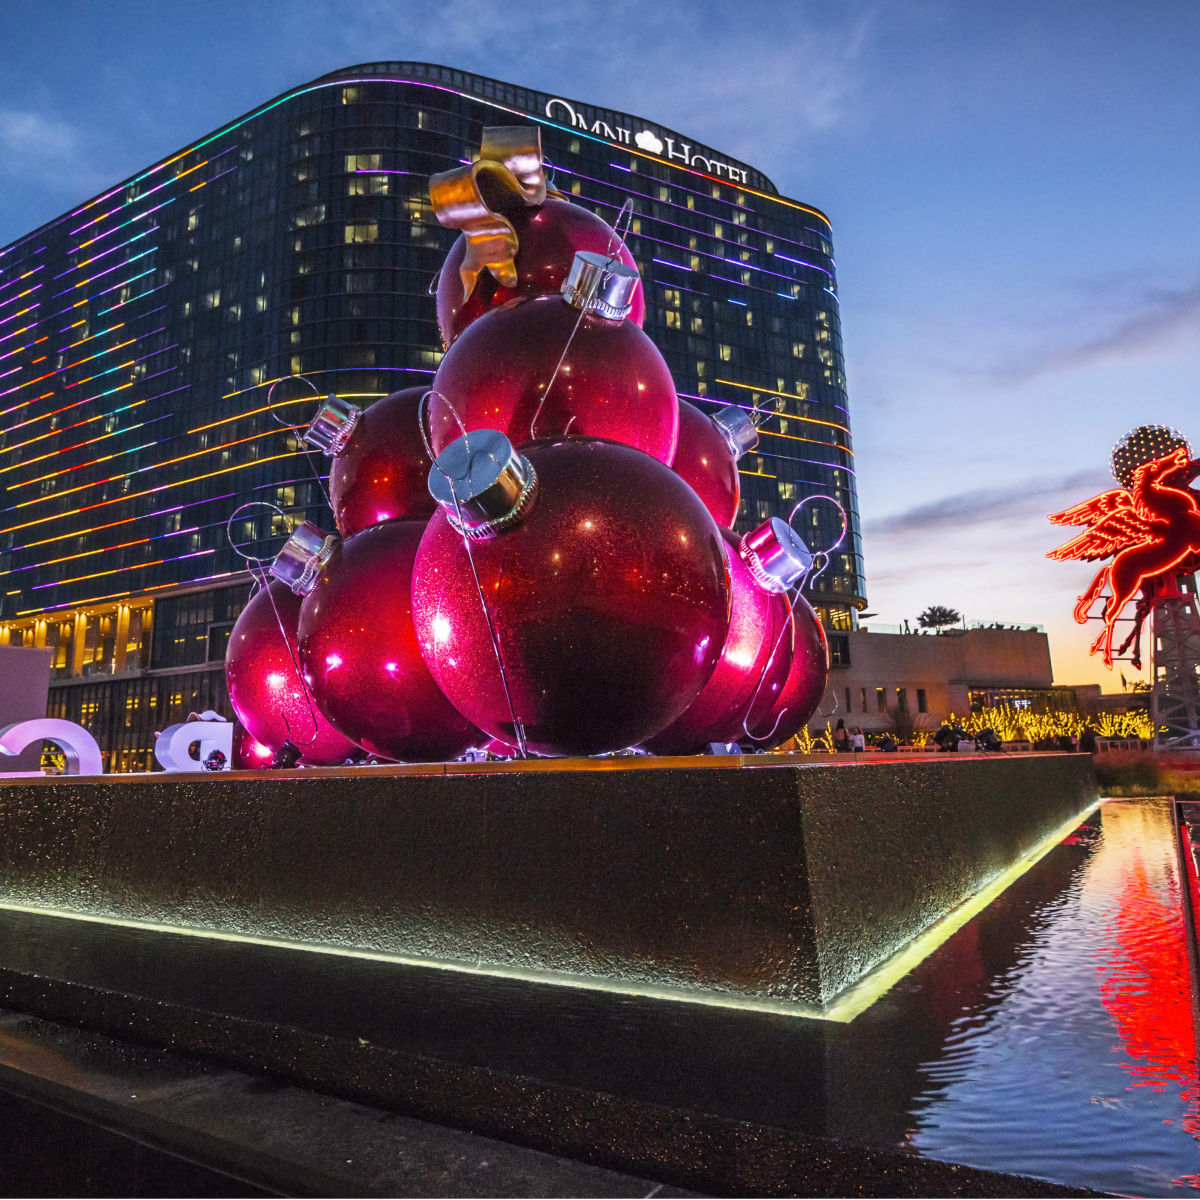 Omni Dallas hotel with Christmas decorations